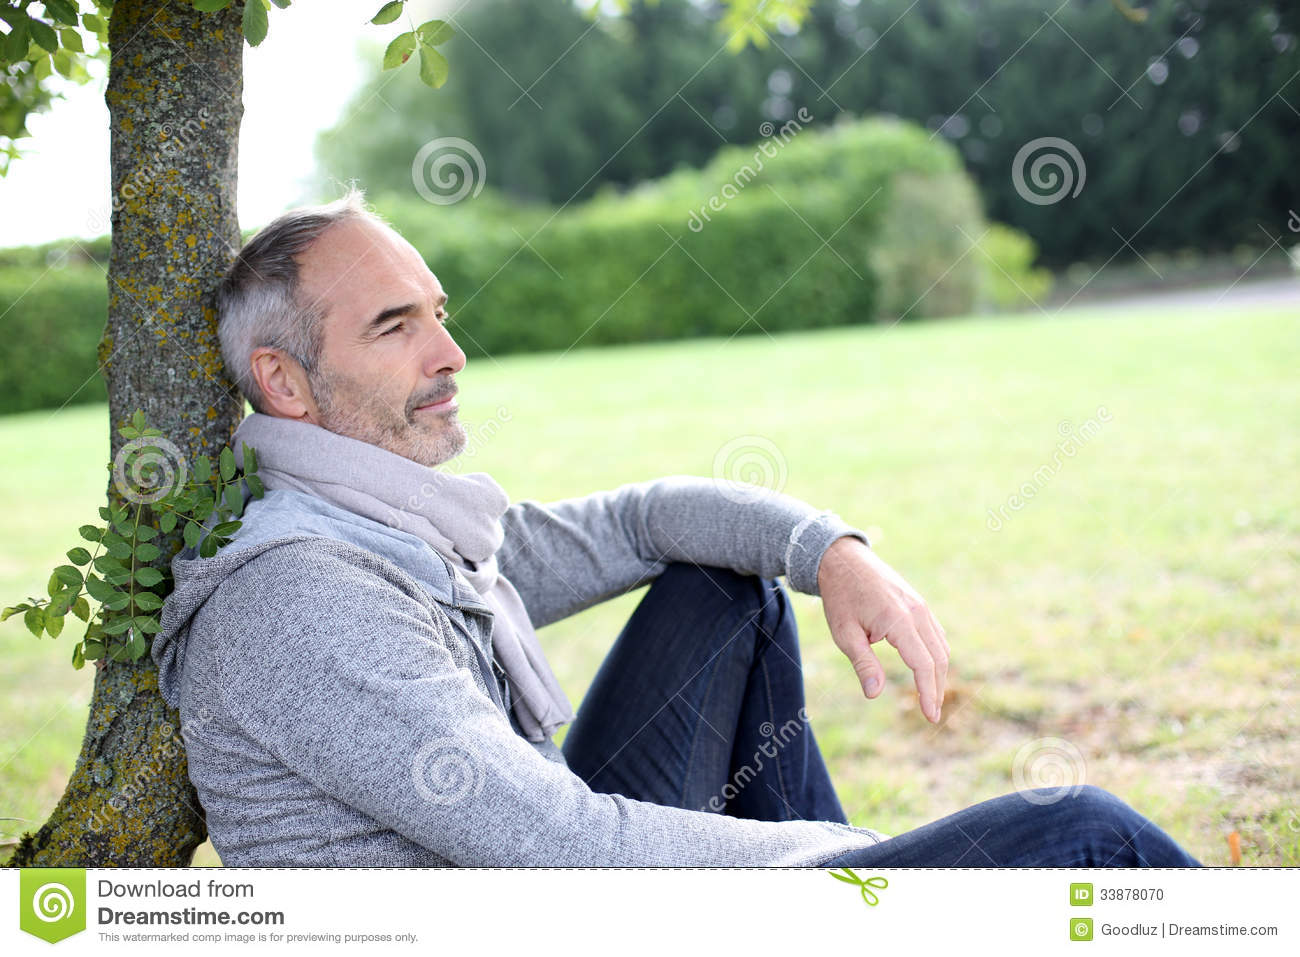 Casual Man Sitting In Garden Stock Photo - Image of peaceful, hair